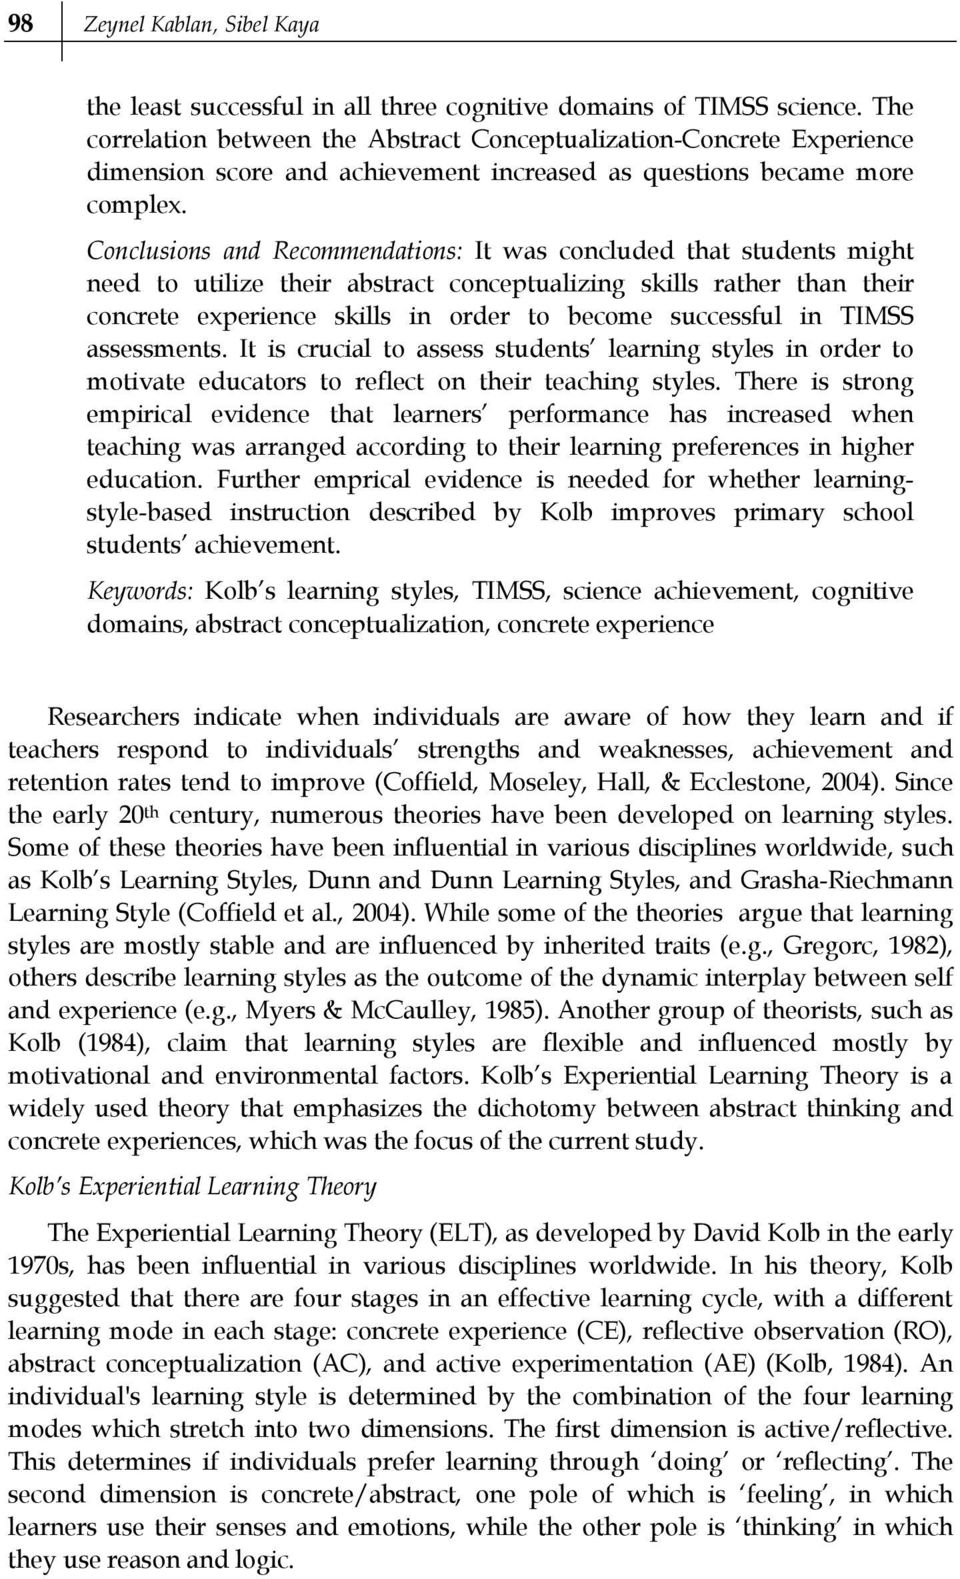 Conclusions and Recommendations: It was concluded that students might need to utilize their abstract conceptualizing skills rather than their concrete experience skills in order to become successful